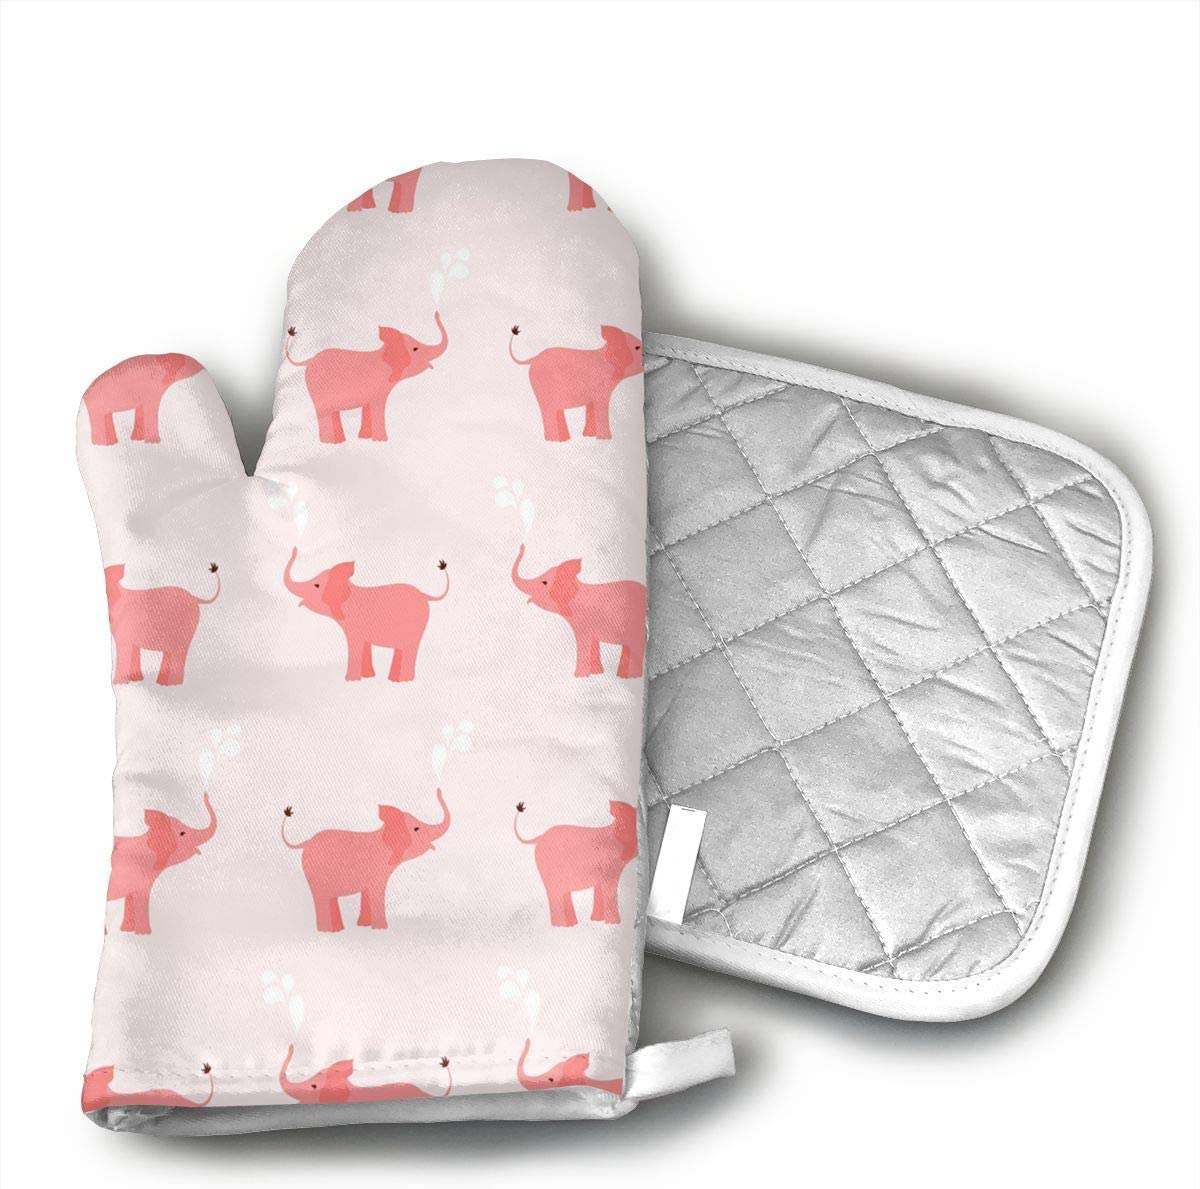 Elephant Seamless Oven Mitts and Pot Holders Set with Polyester Cotton Non-Slip Grip, Heat Resistant, Oven Gloves for BBQ Cooking Baking, Grilling